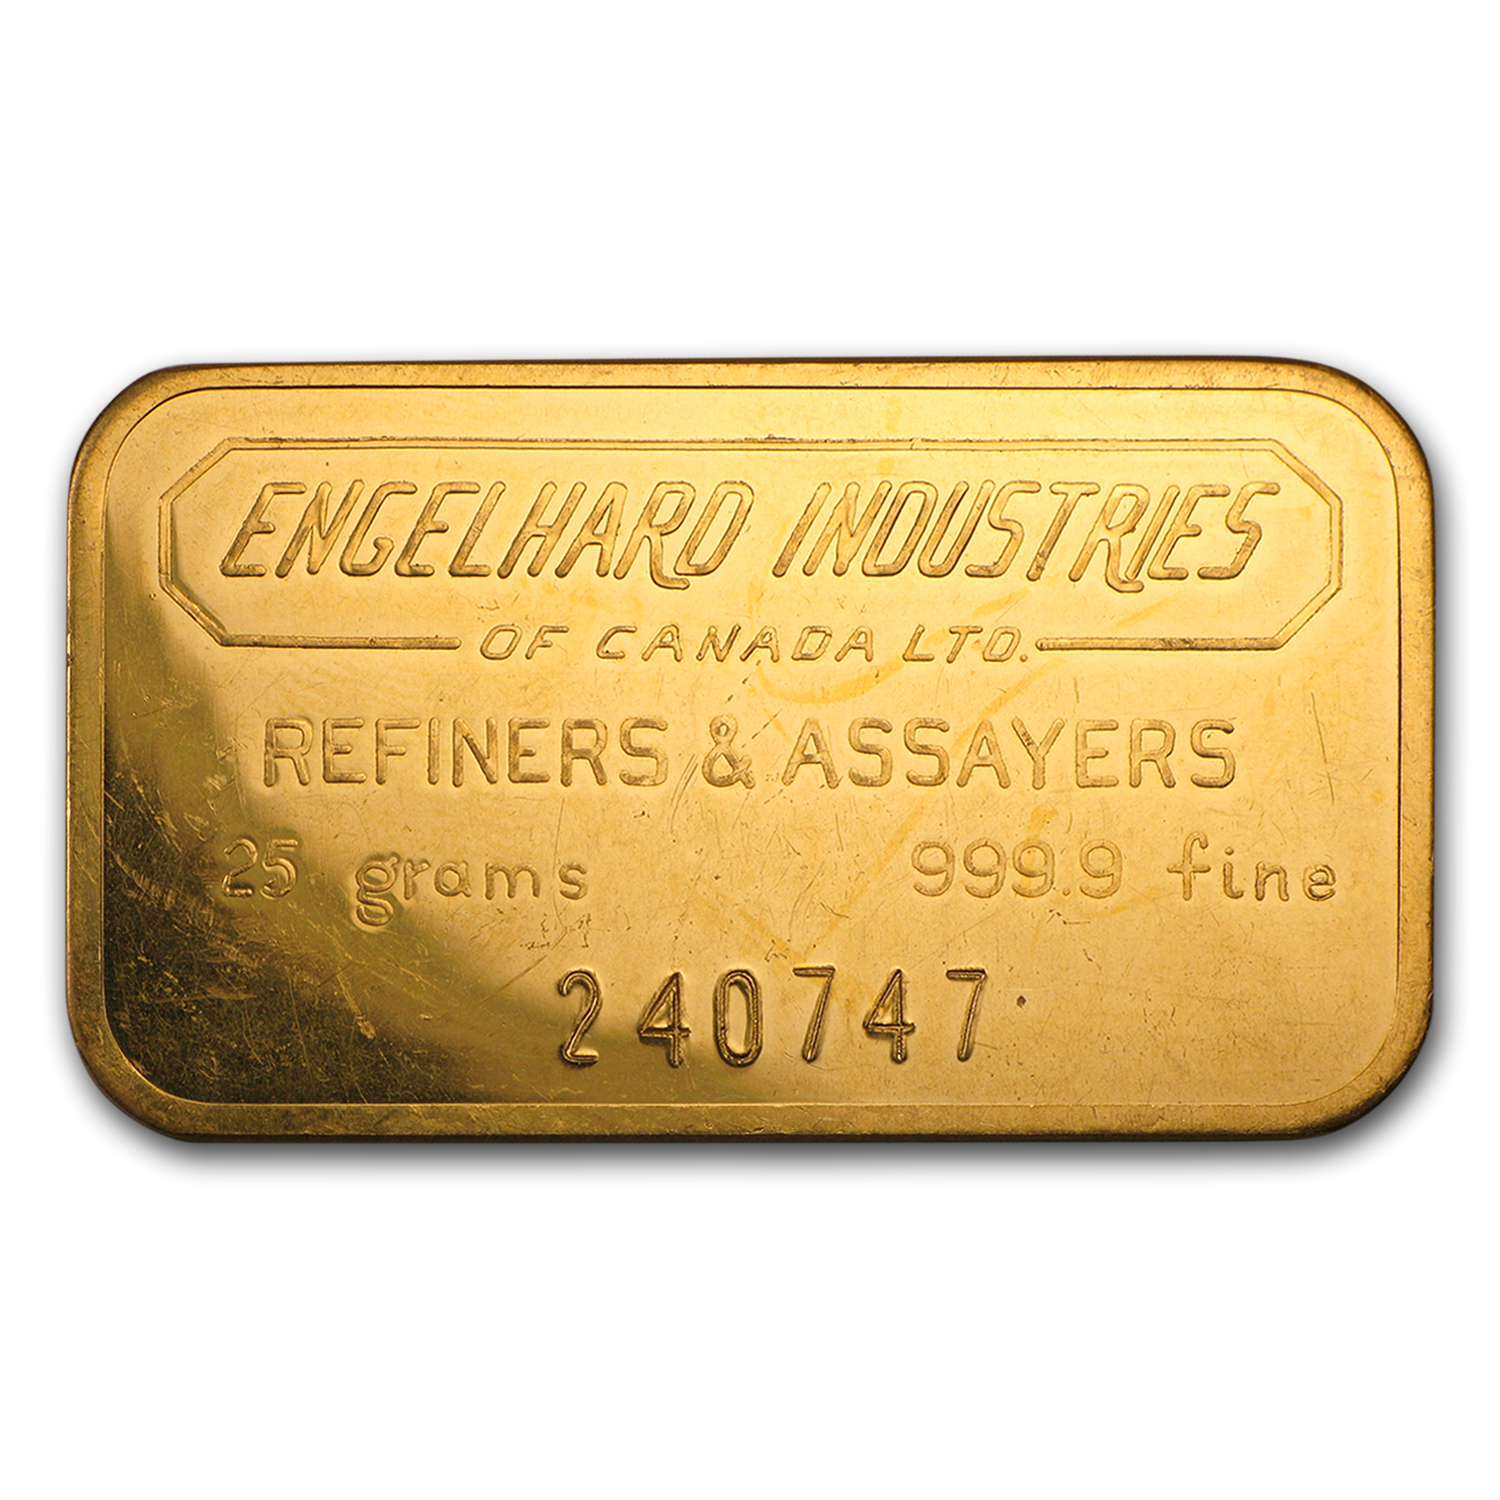 25 gram Gold Bar - Engelhard Industries of Canada